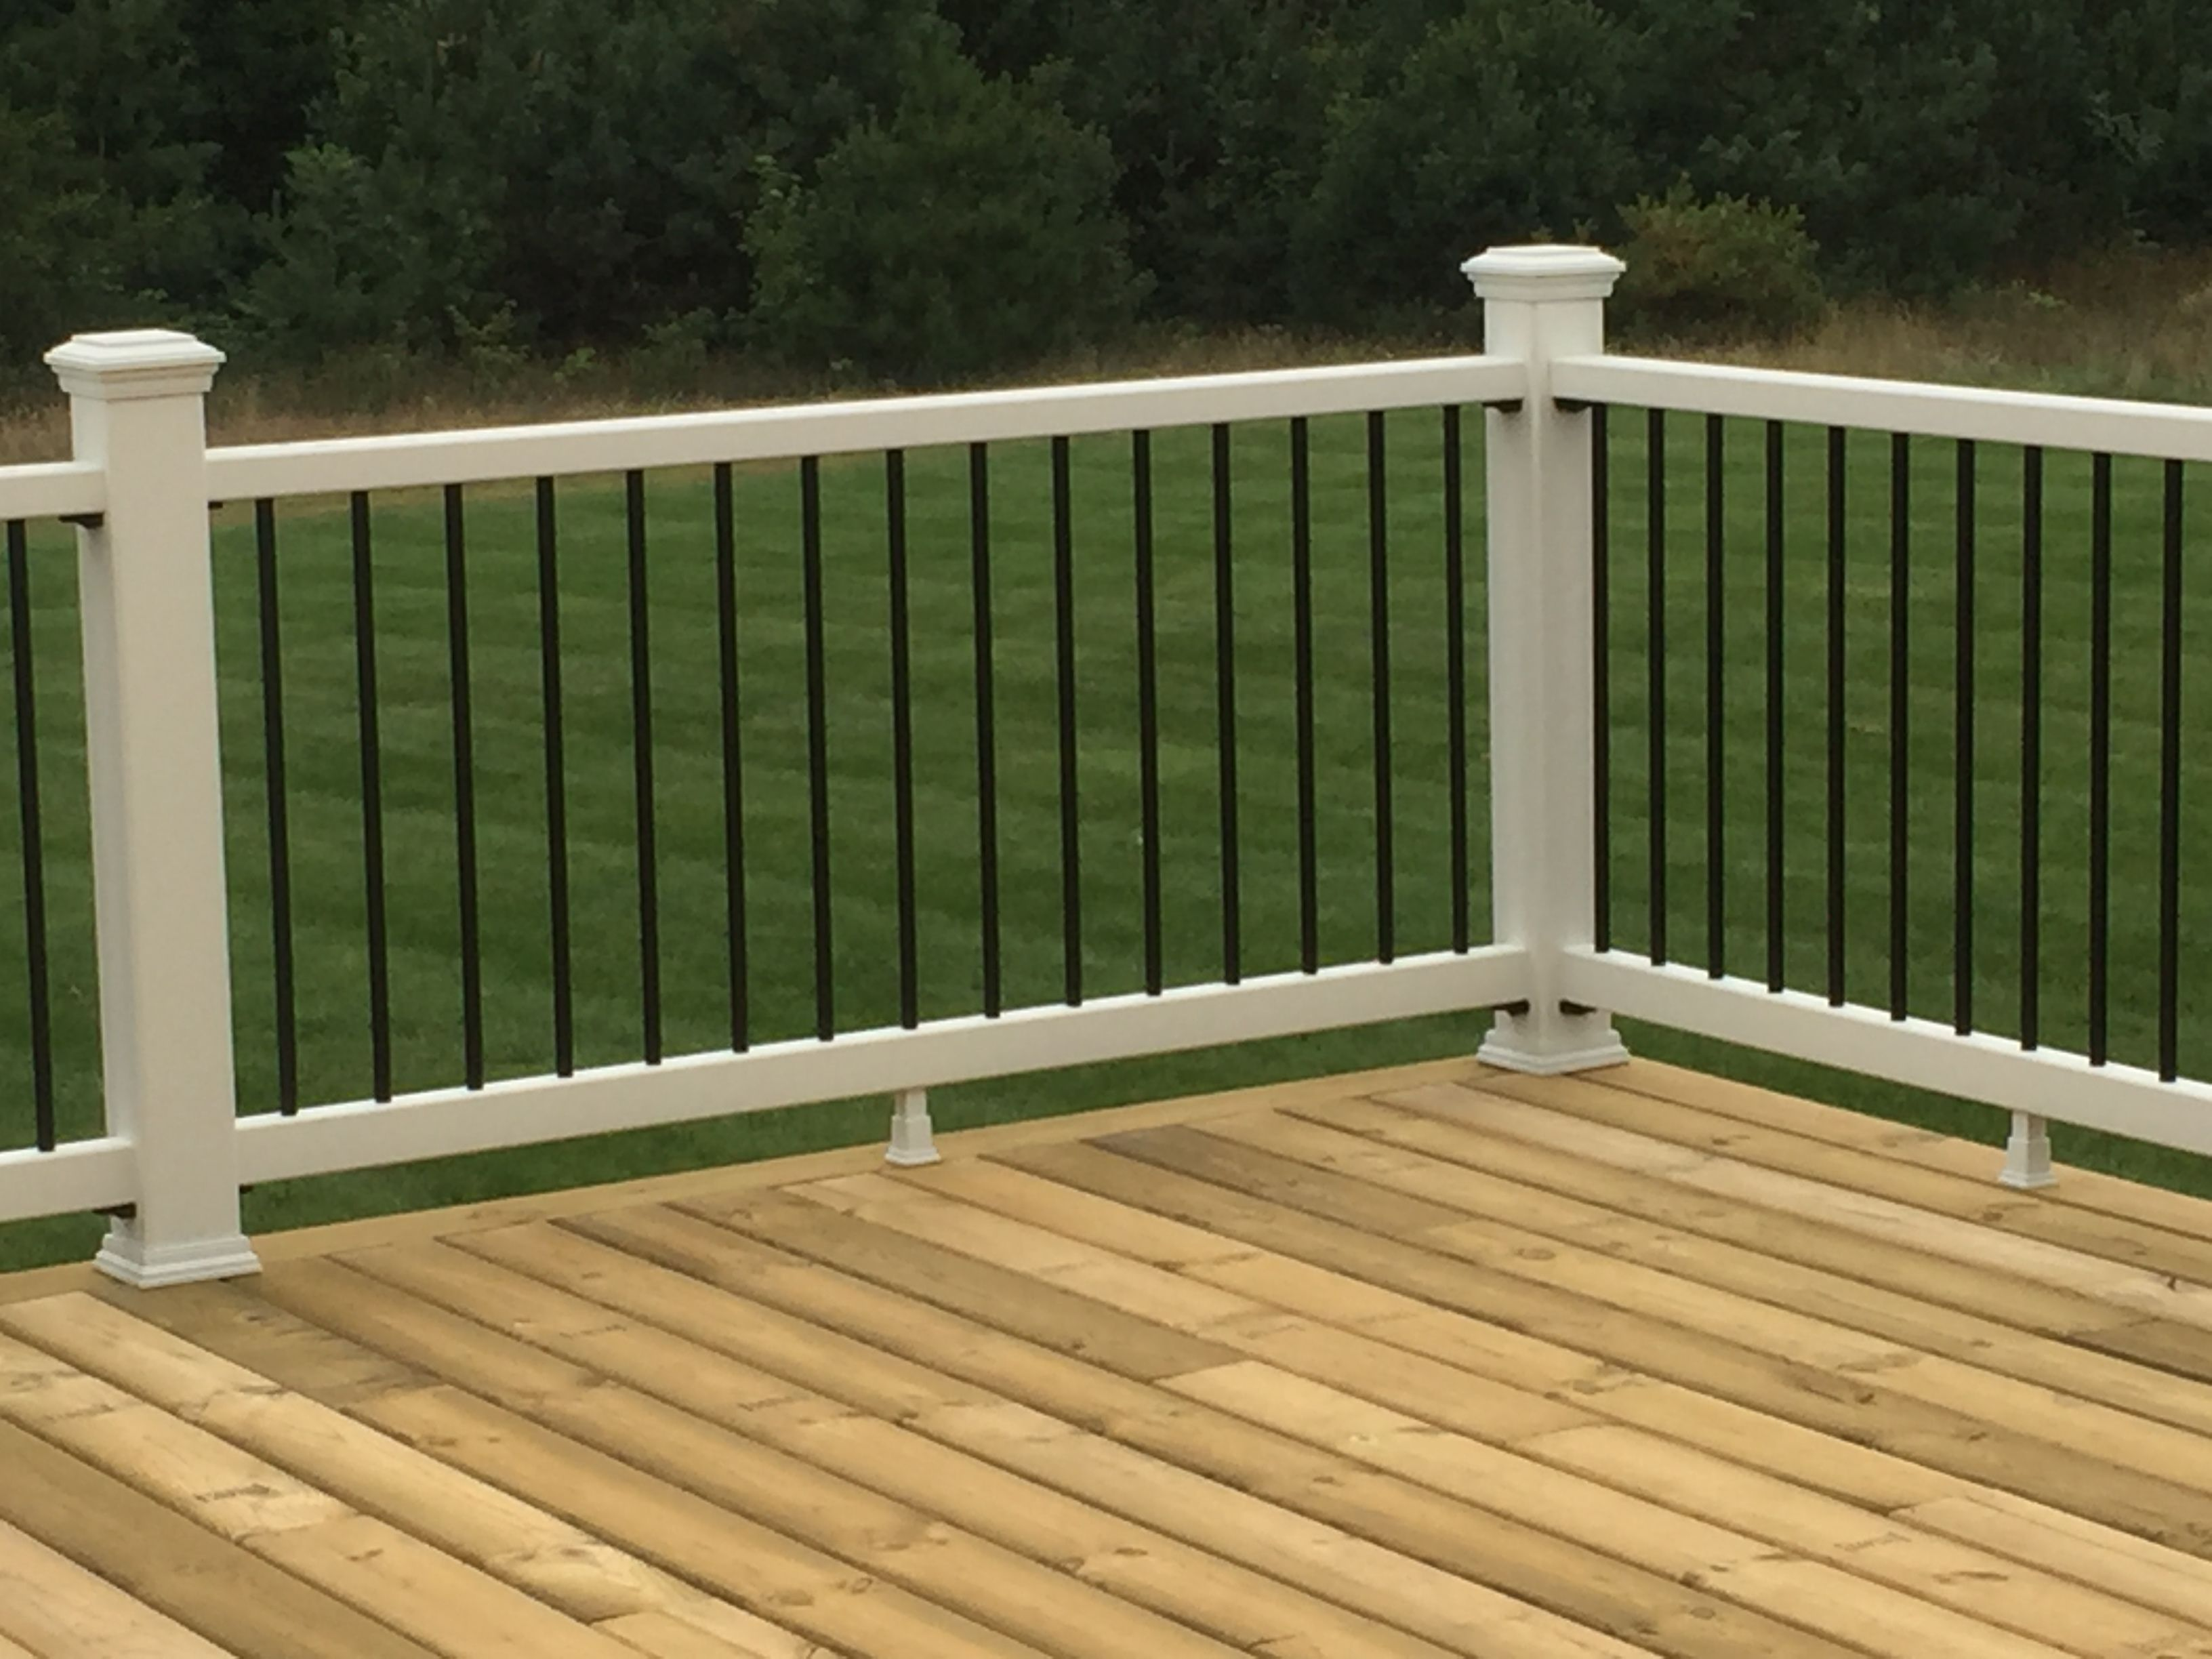 Trex Select Railing With Aluminum Balusters And Pressure Treated Deck Boards Outdoor Decor Treated Deck Boards Patio